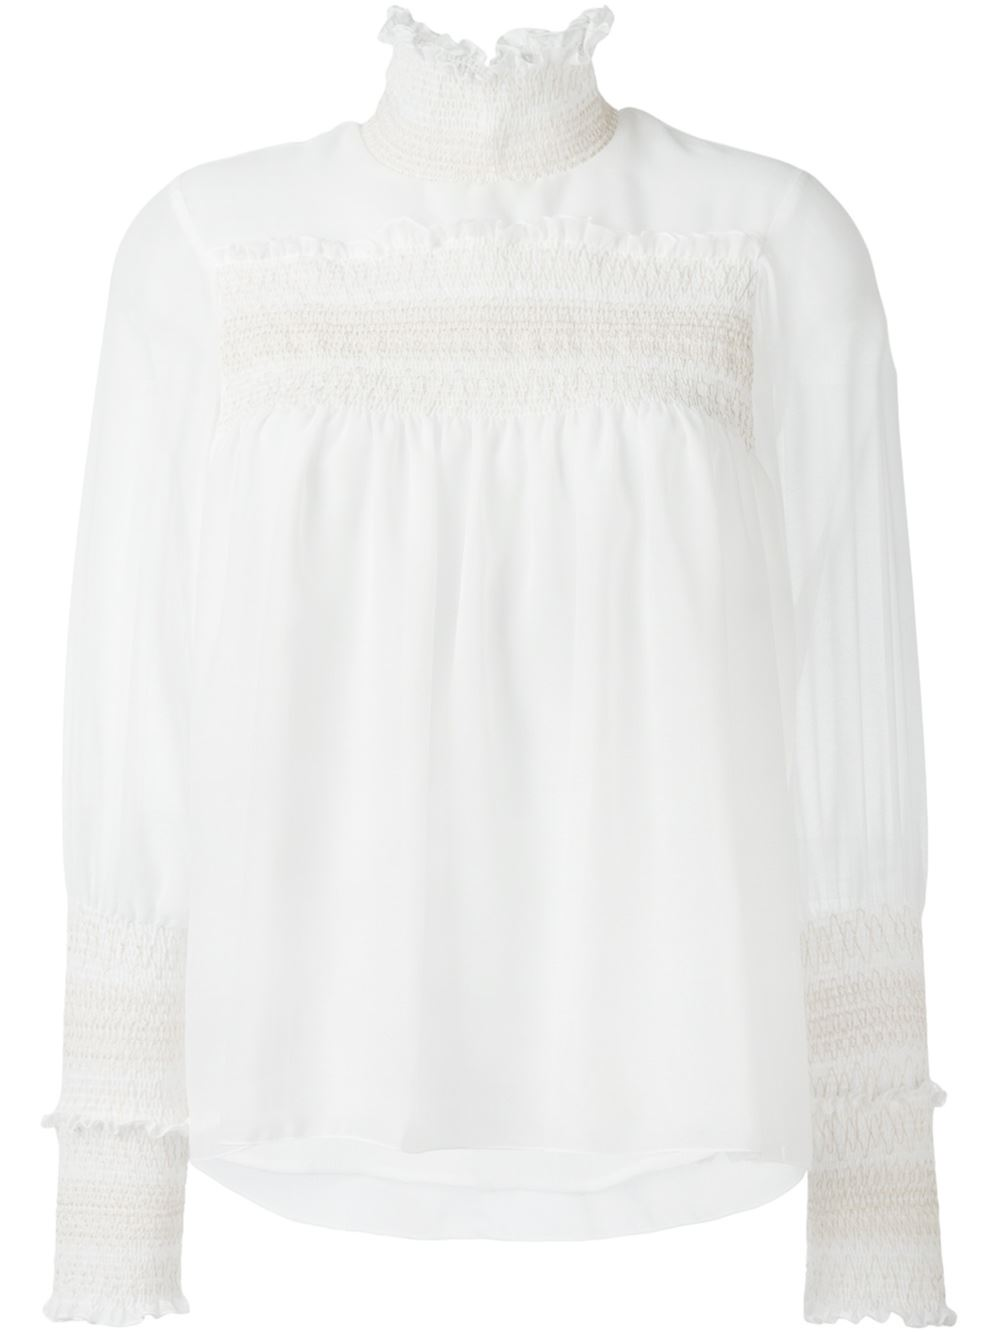 See by Chloe 'Smocked Detail Blouse'